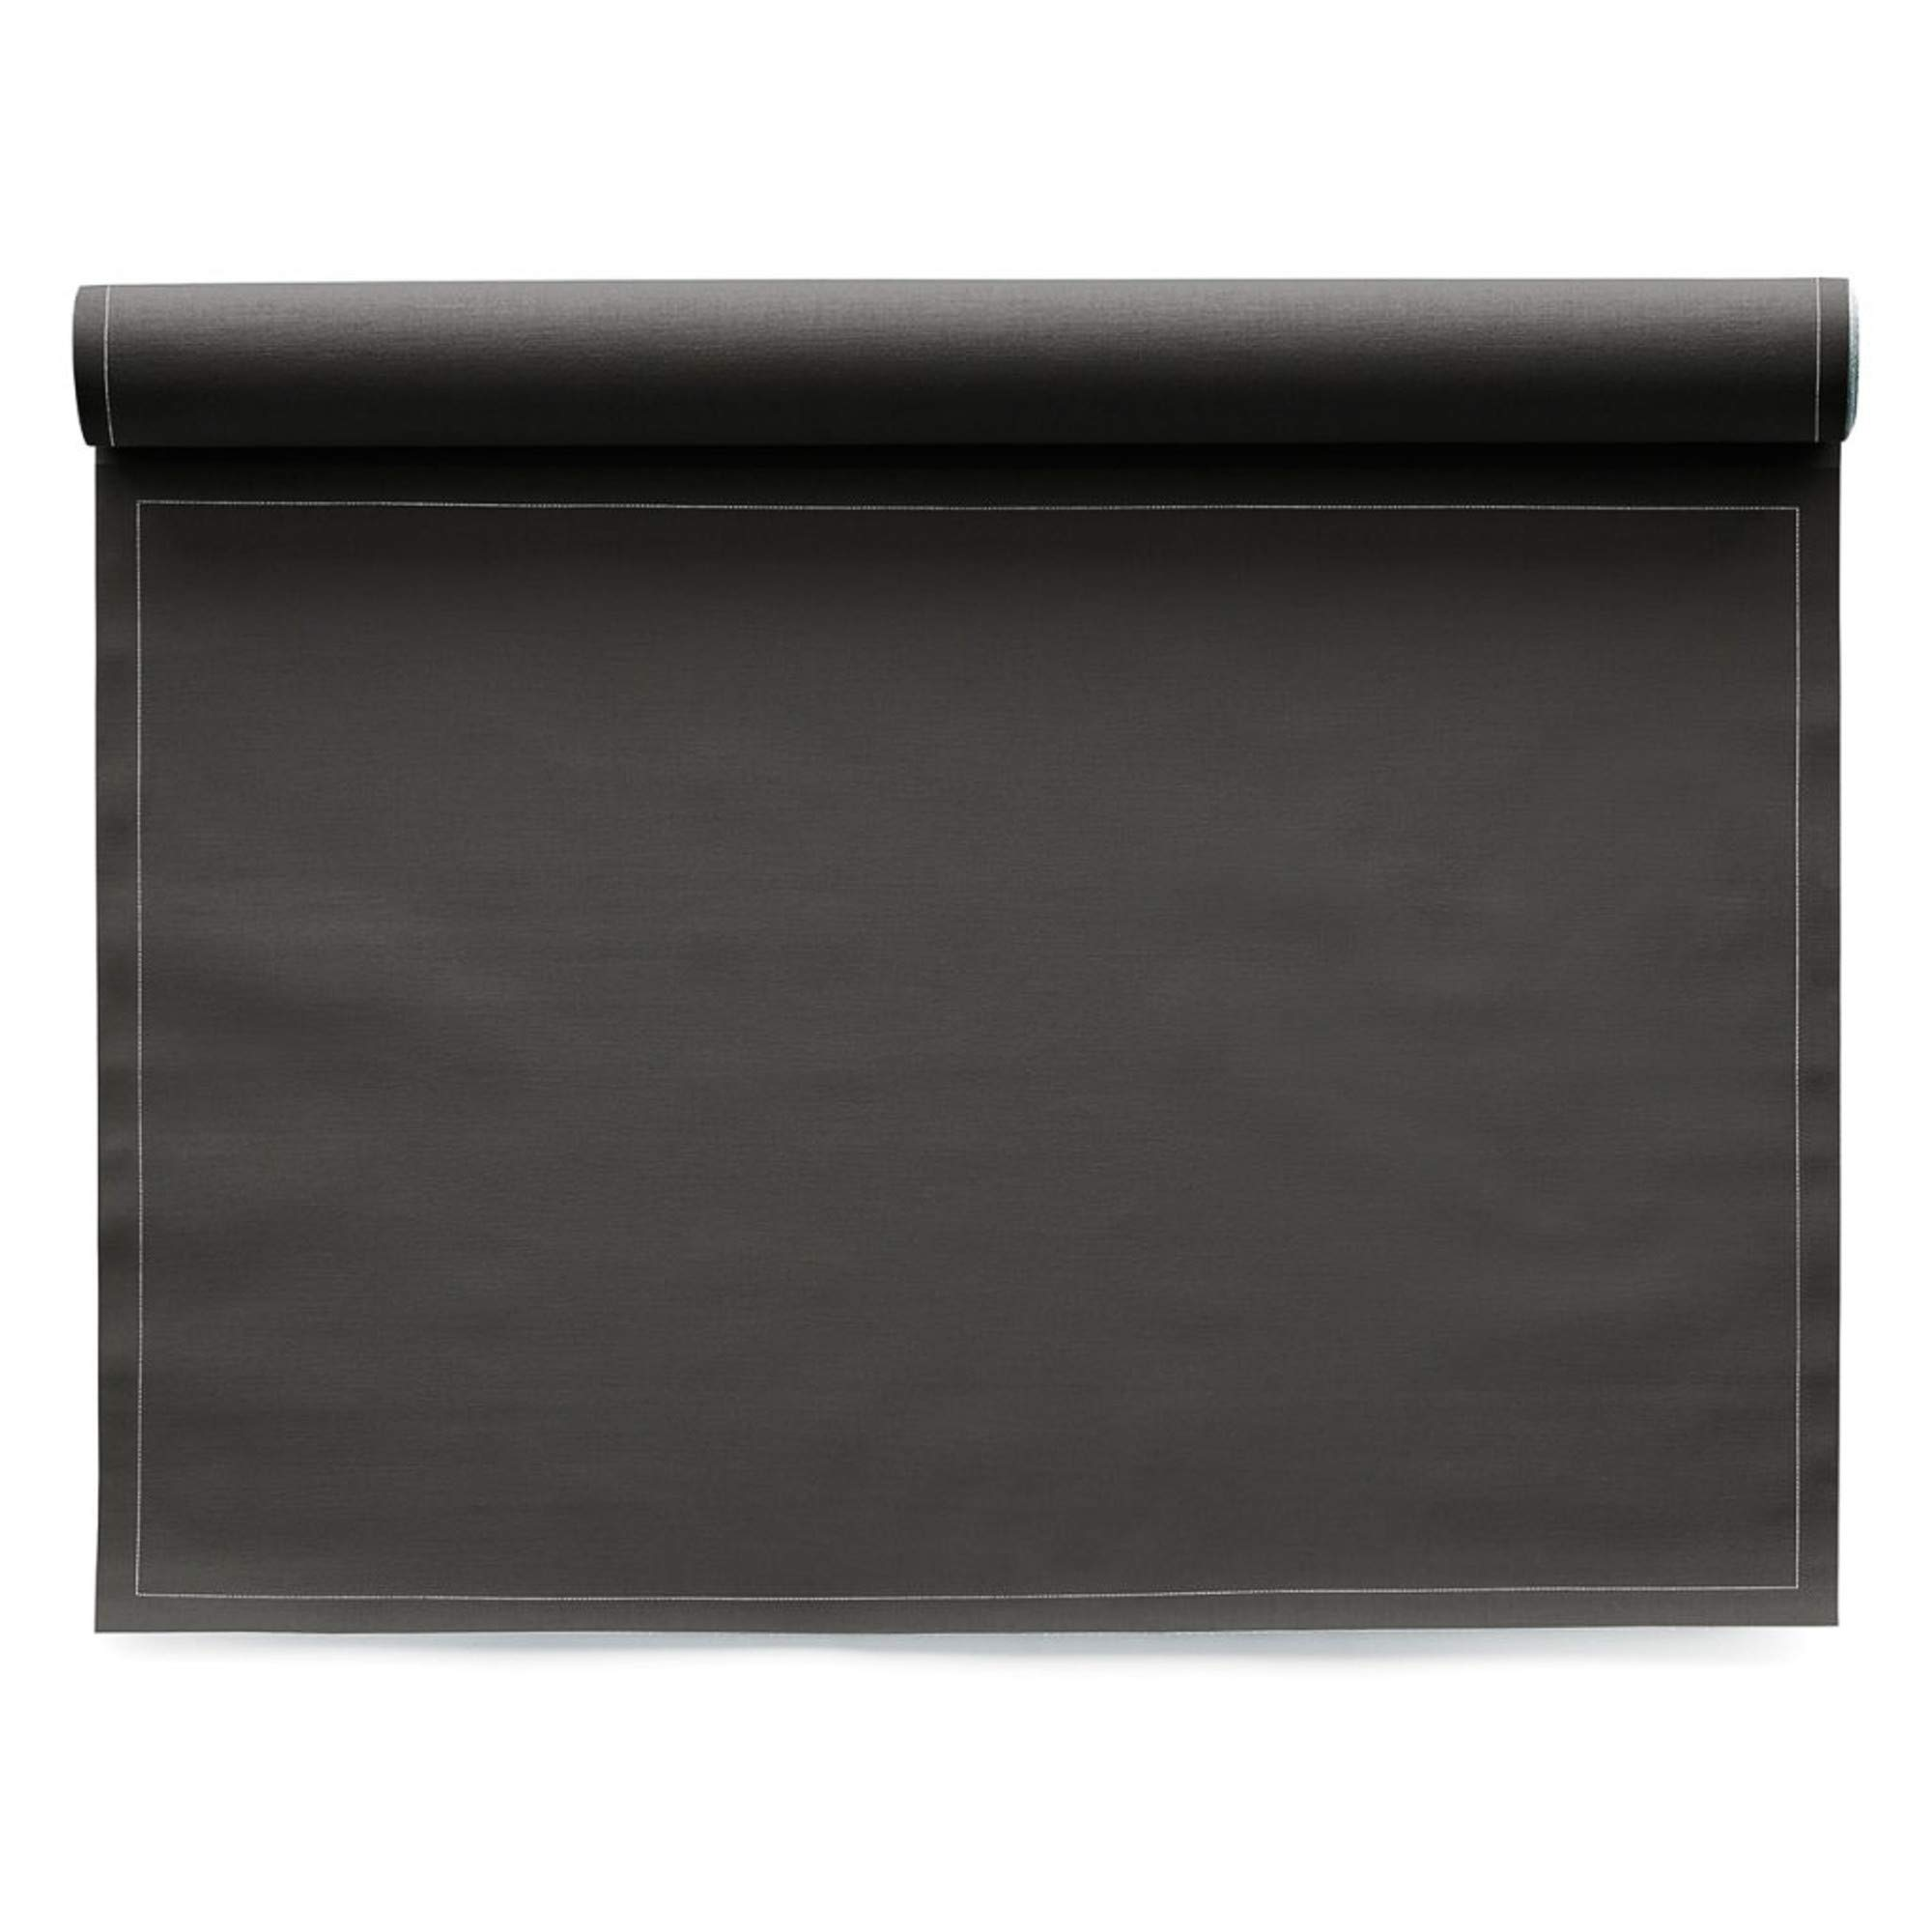 Cotton Placemat - 18.9 x 12.6 in - 12 units per roll - Anthracite by MY DRAP (Image #1)